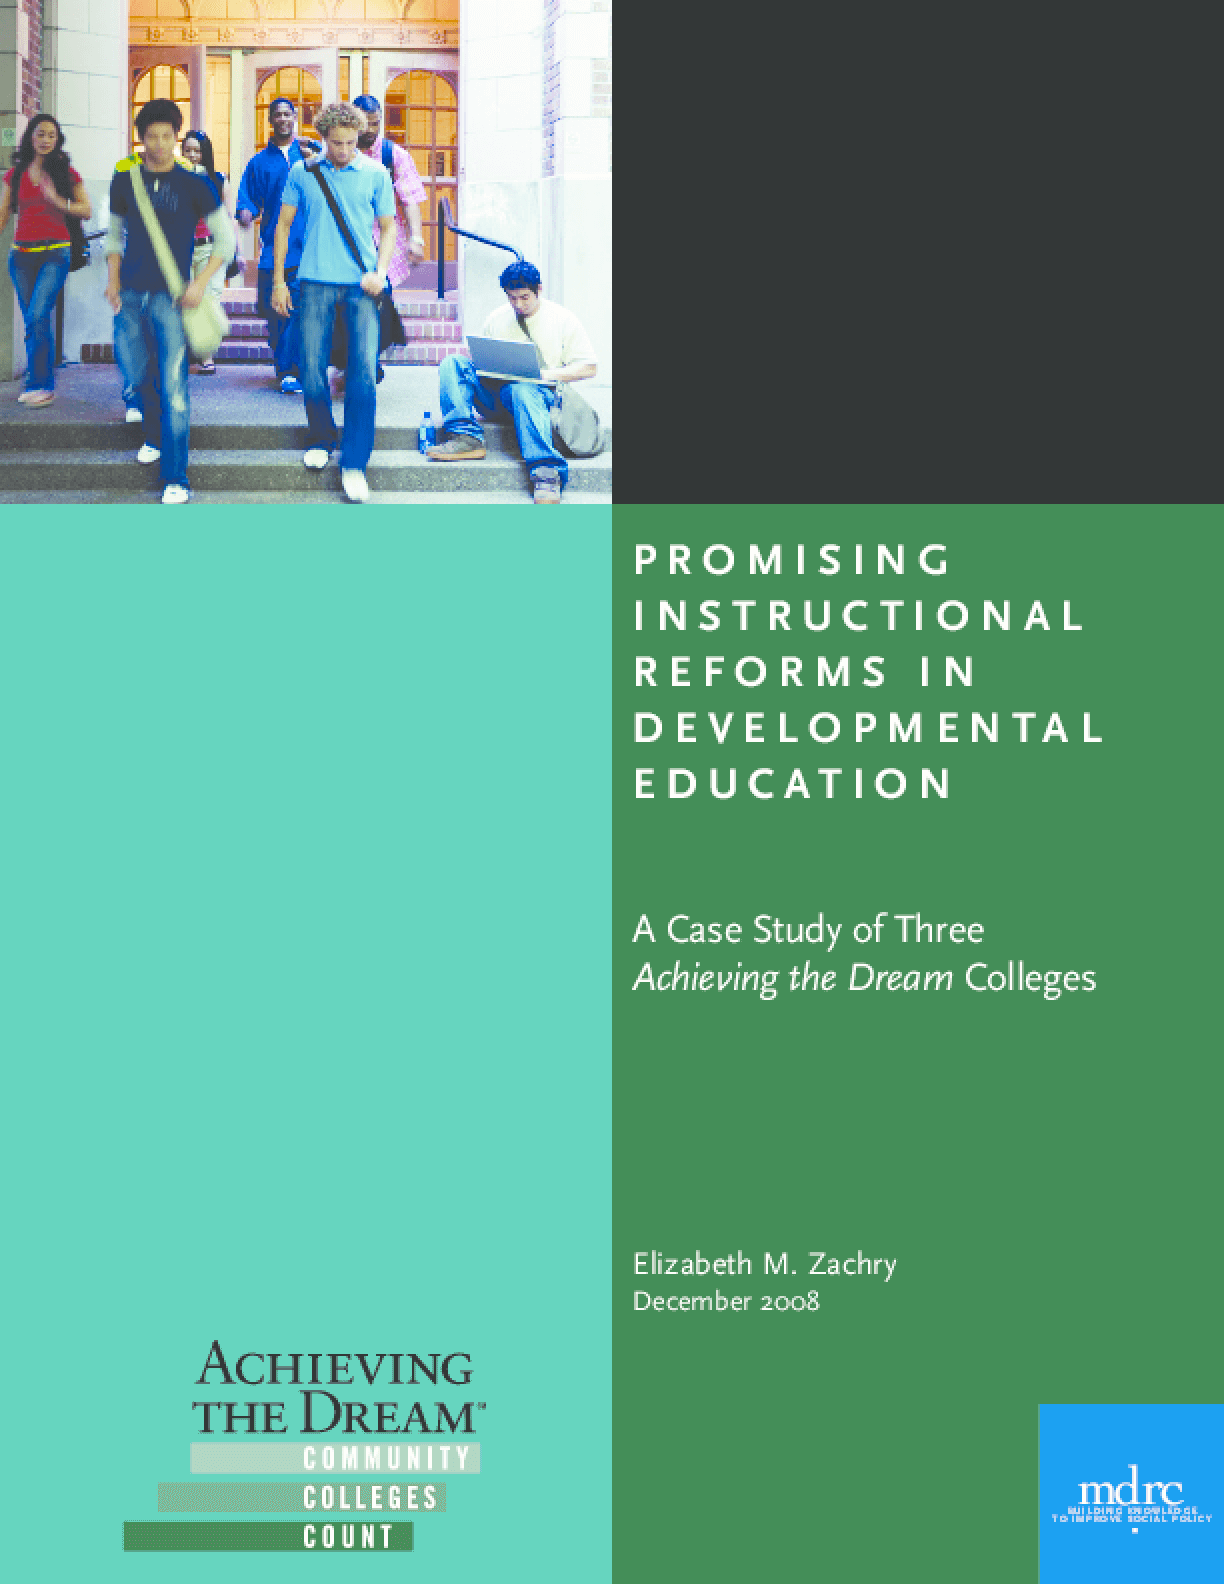 Promising Instructional Reforms in Developmental Education: A Case Study of Three Achieving the Dream Colleges